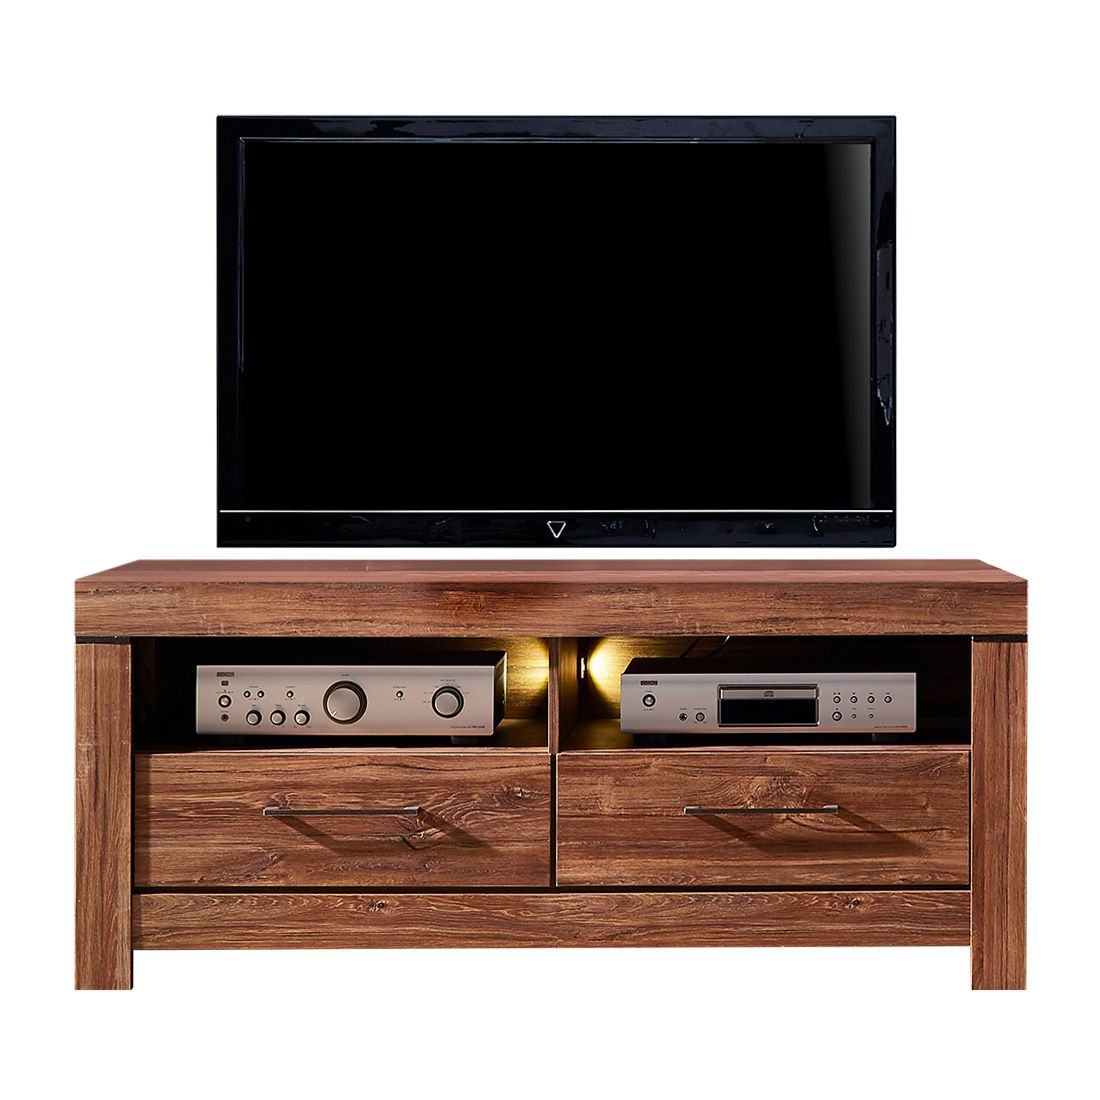 energie  A+, Tv-lowboard Blairmore (inclusief verlichting) - acaciahouten look - 138cm, loftscape